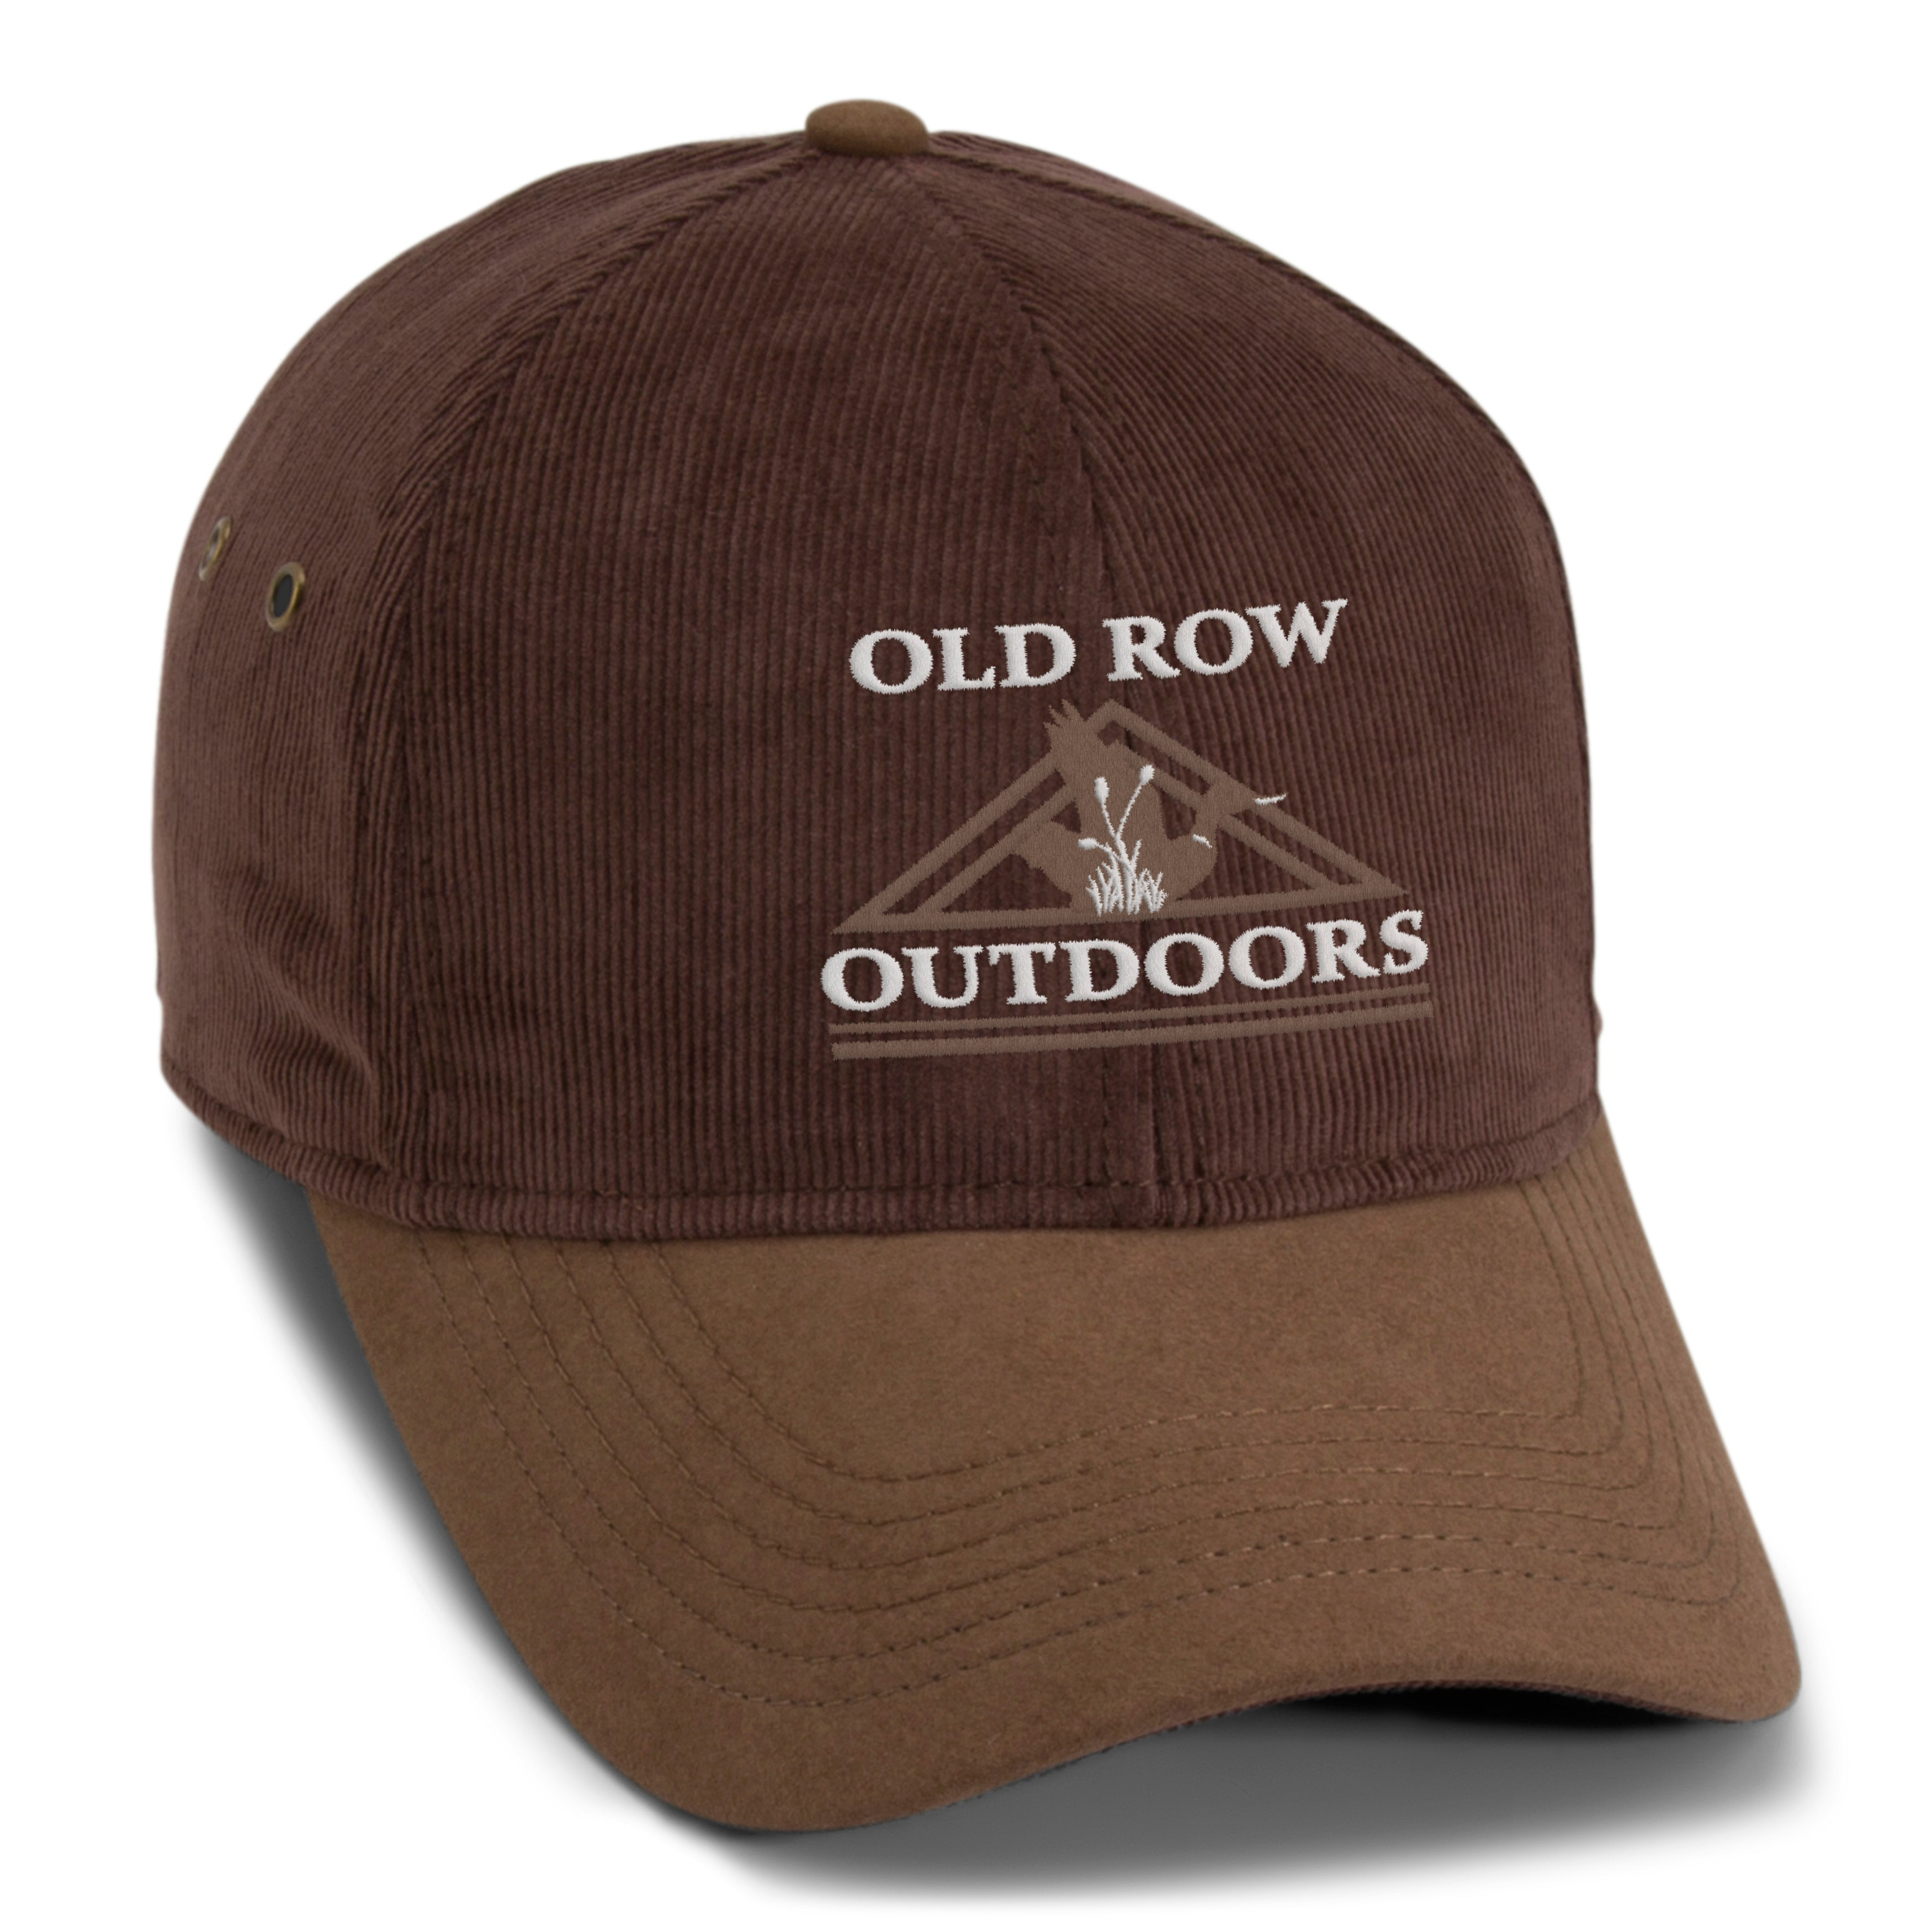 Old Row Outdoors Corduroy Hat